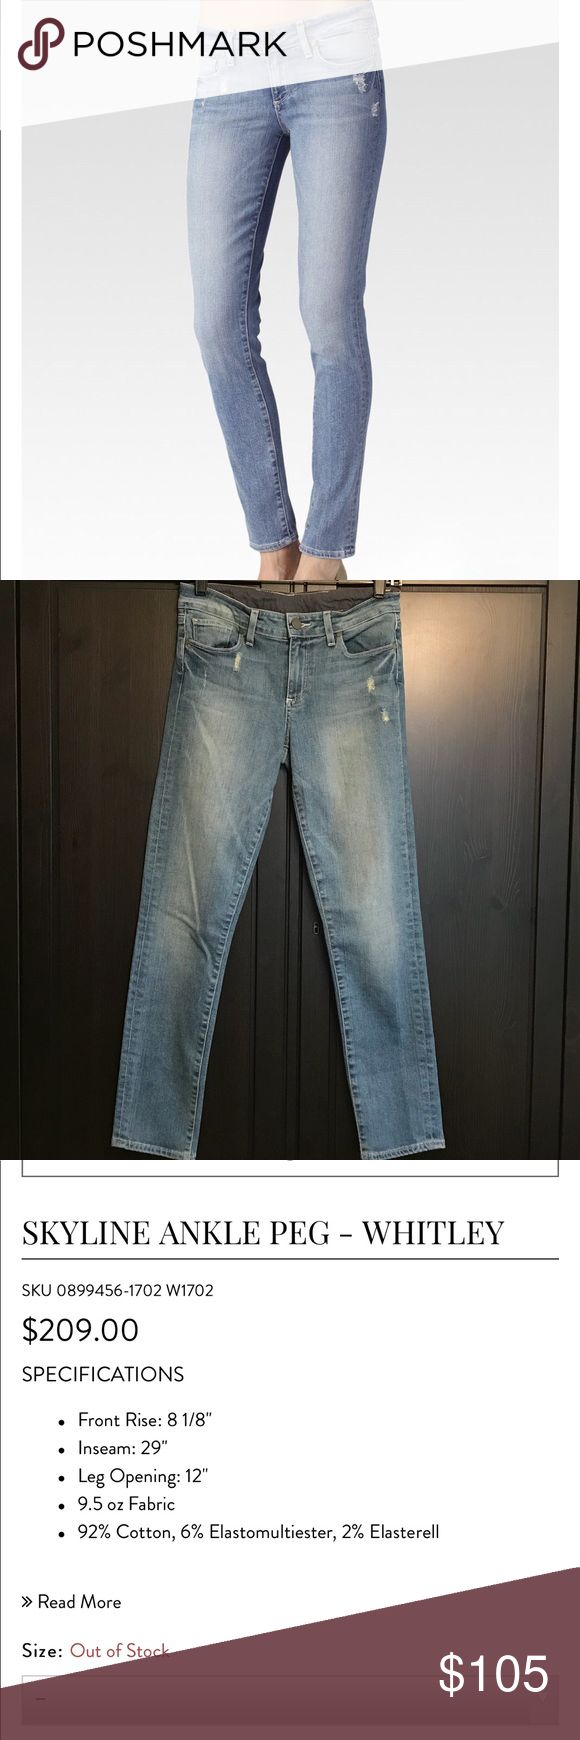 PAIGE Skyline Ankle Peg Jeans- Whitley PAIGE Skyline Ankle Peg Jeans- Whitley. Only worn a couple of times and in excellent condition. Size 28. PAIGE Jeans Ankle & Cropped